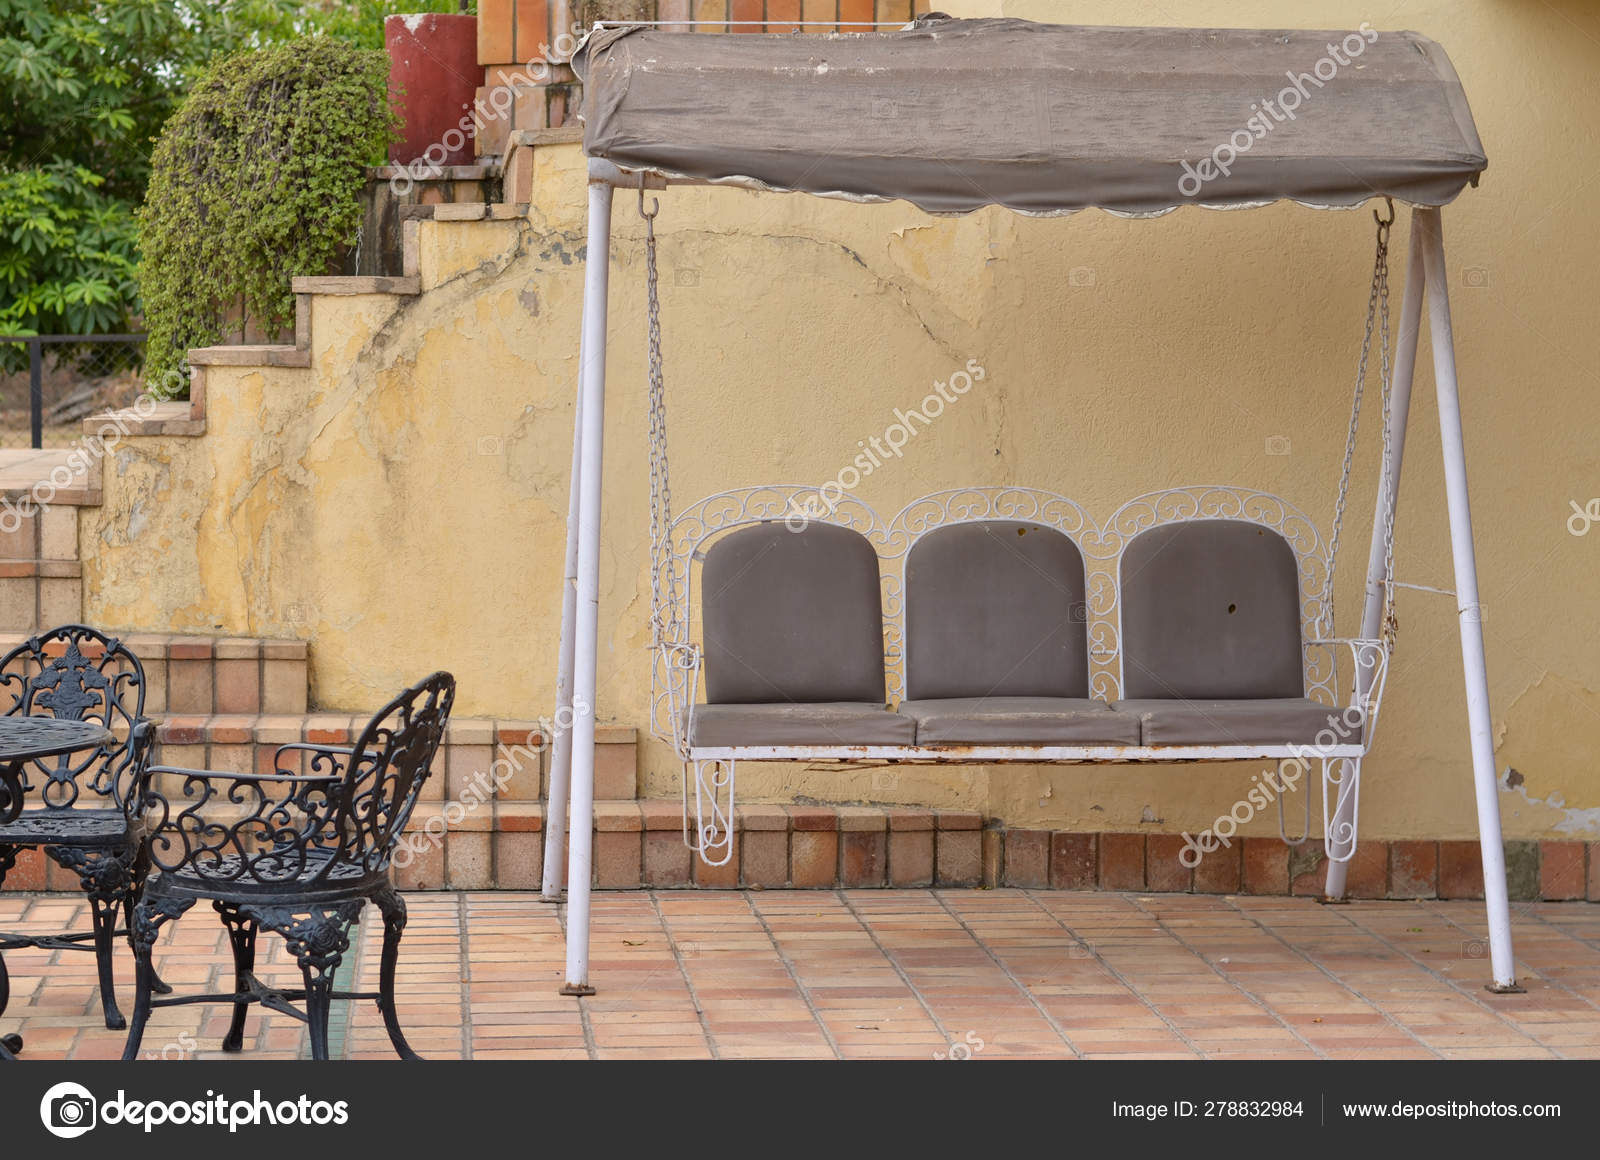 Picture of: Wrought Iron Dining Table Chair Kept Patio Swing Iron Background Stock Photo C Jayantbahel 278832984